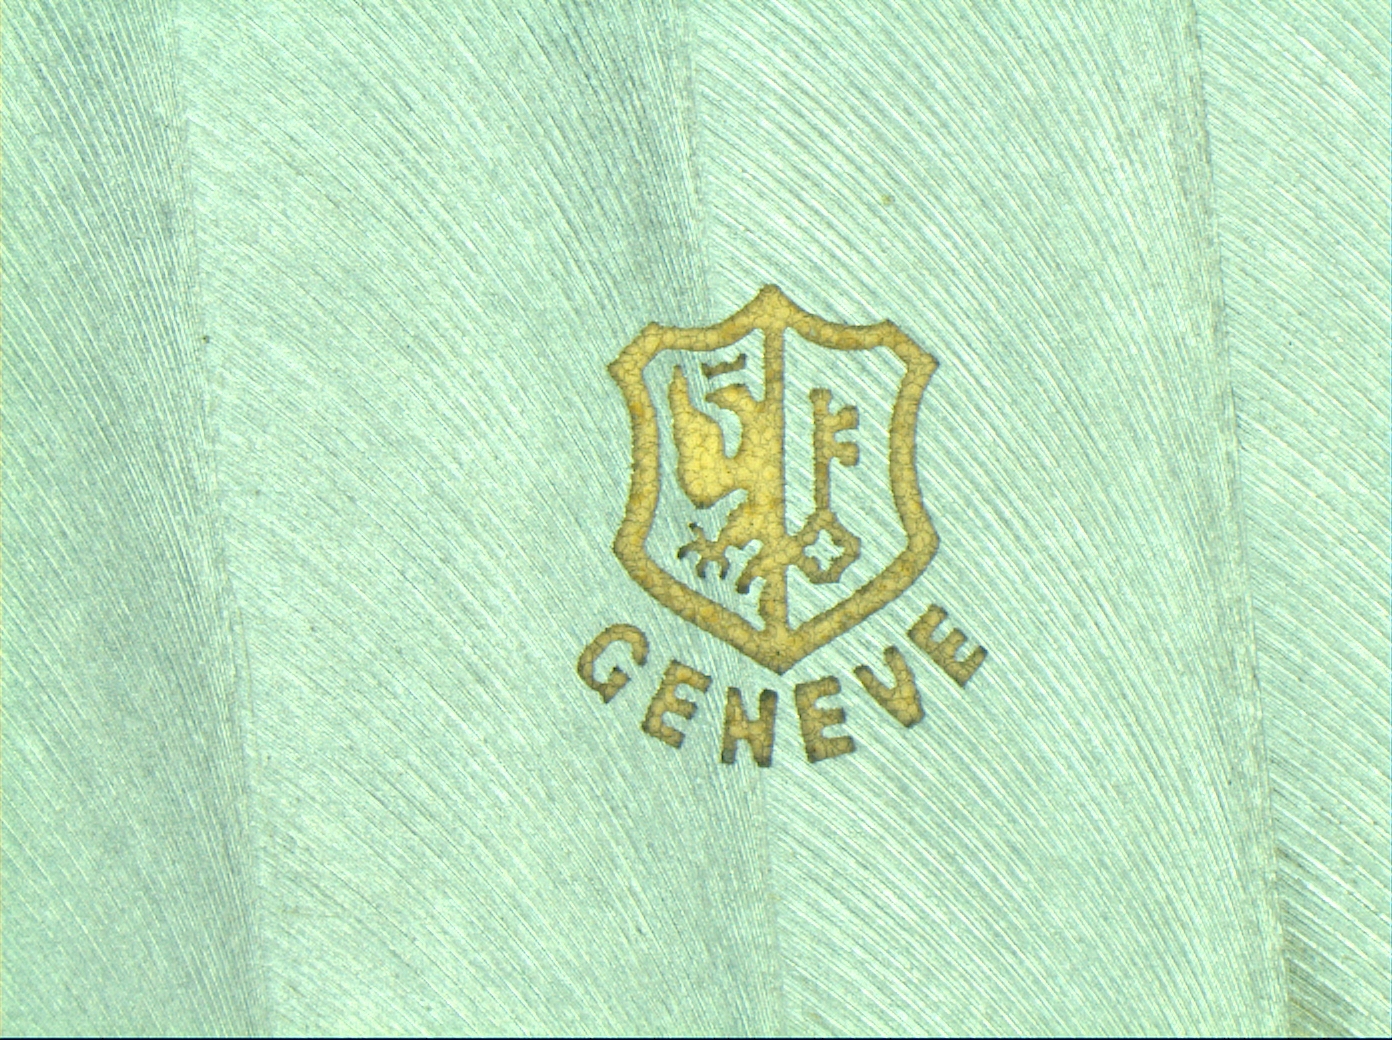 The New Geneva Seal